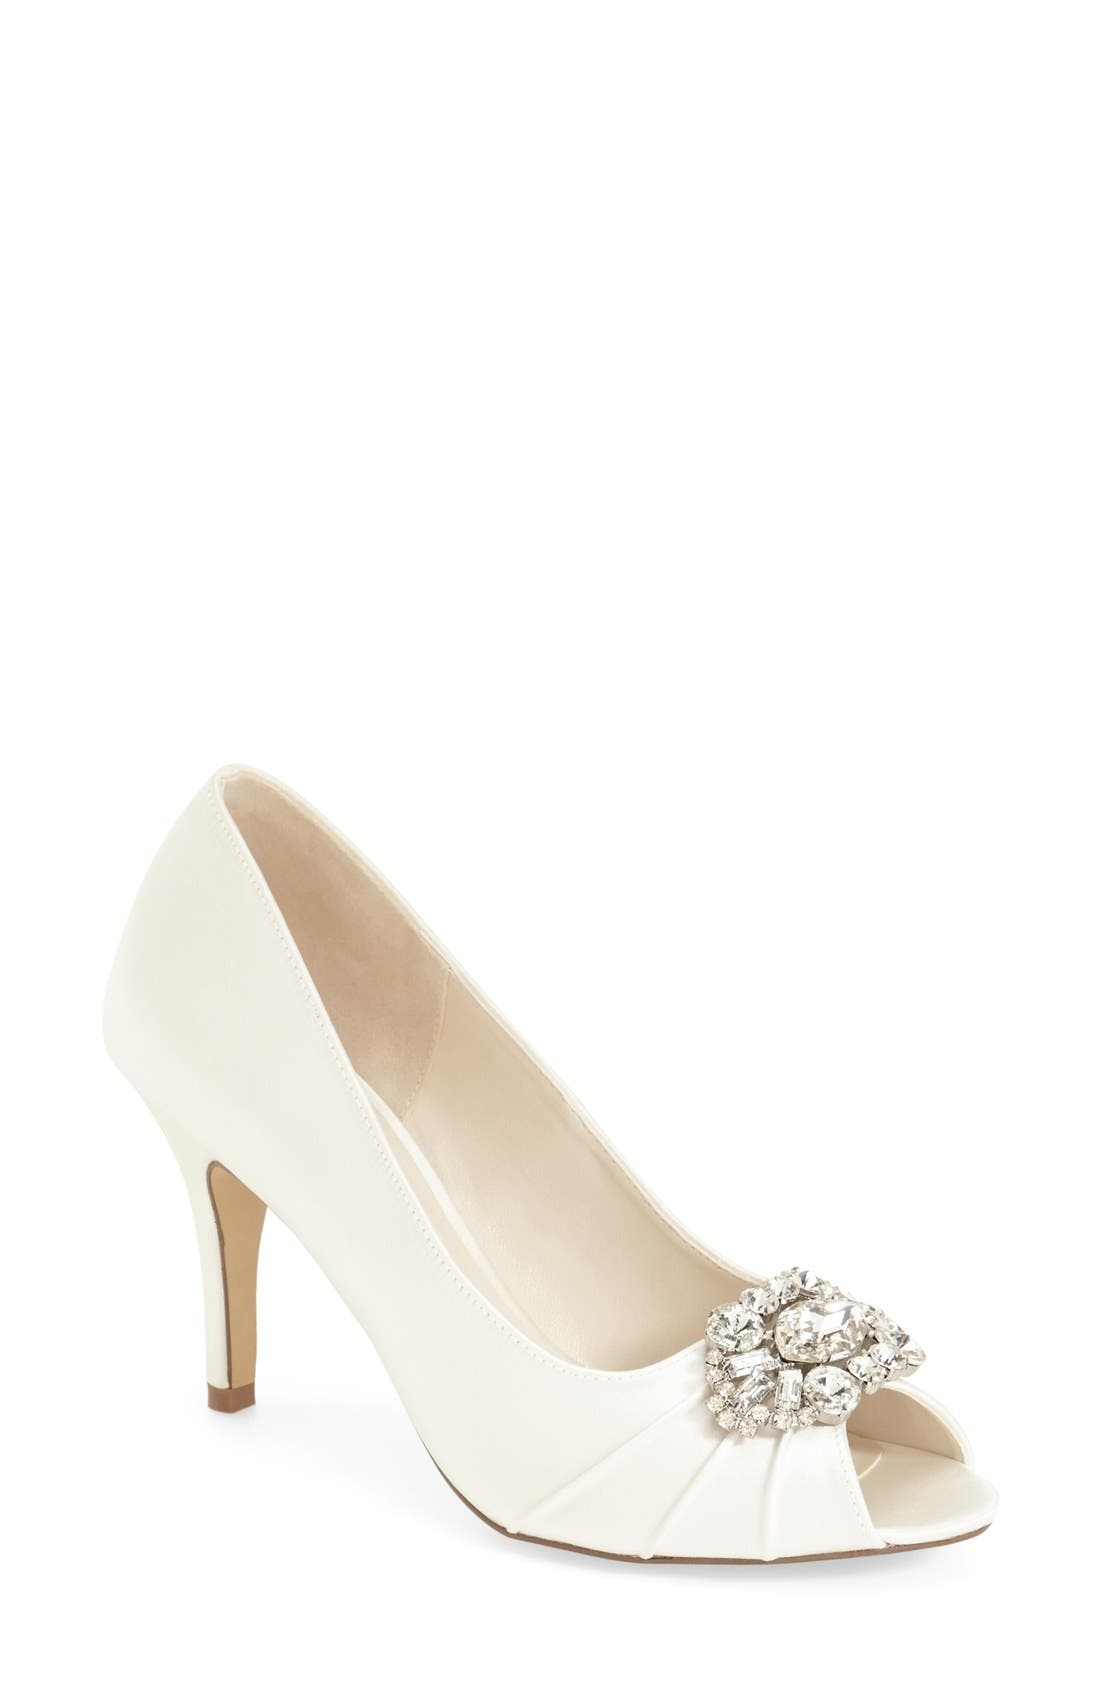 'Tender' Open Toe Pump,                         Main,                         color, Ivory Satin